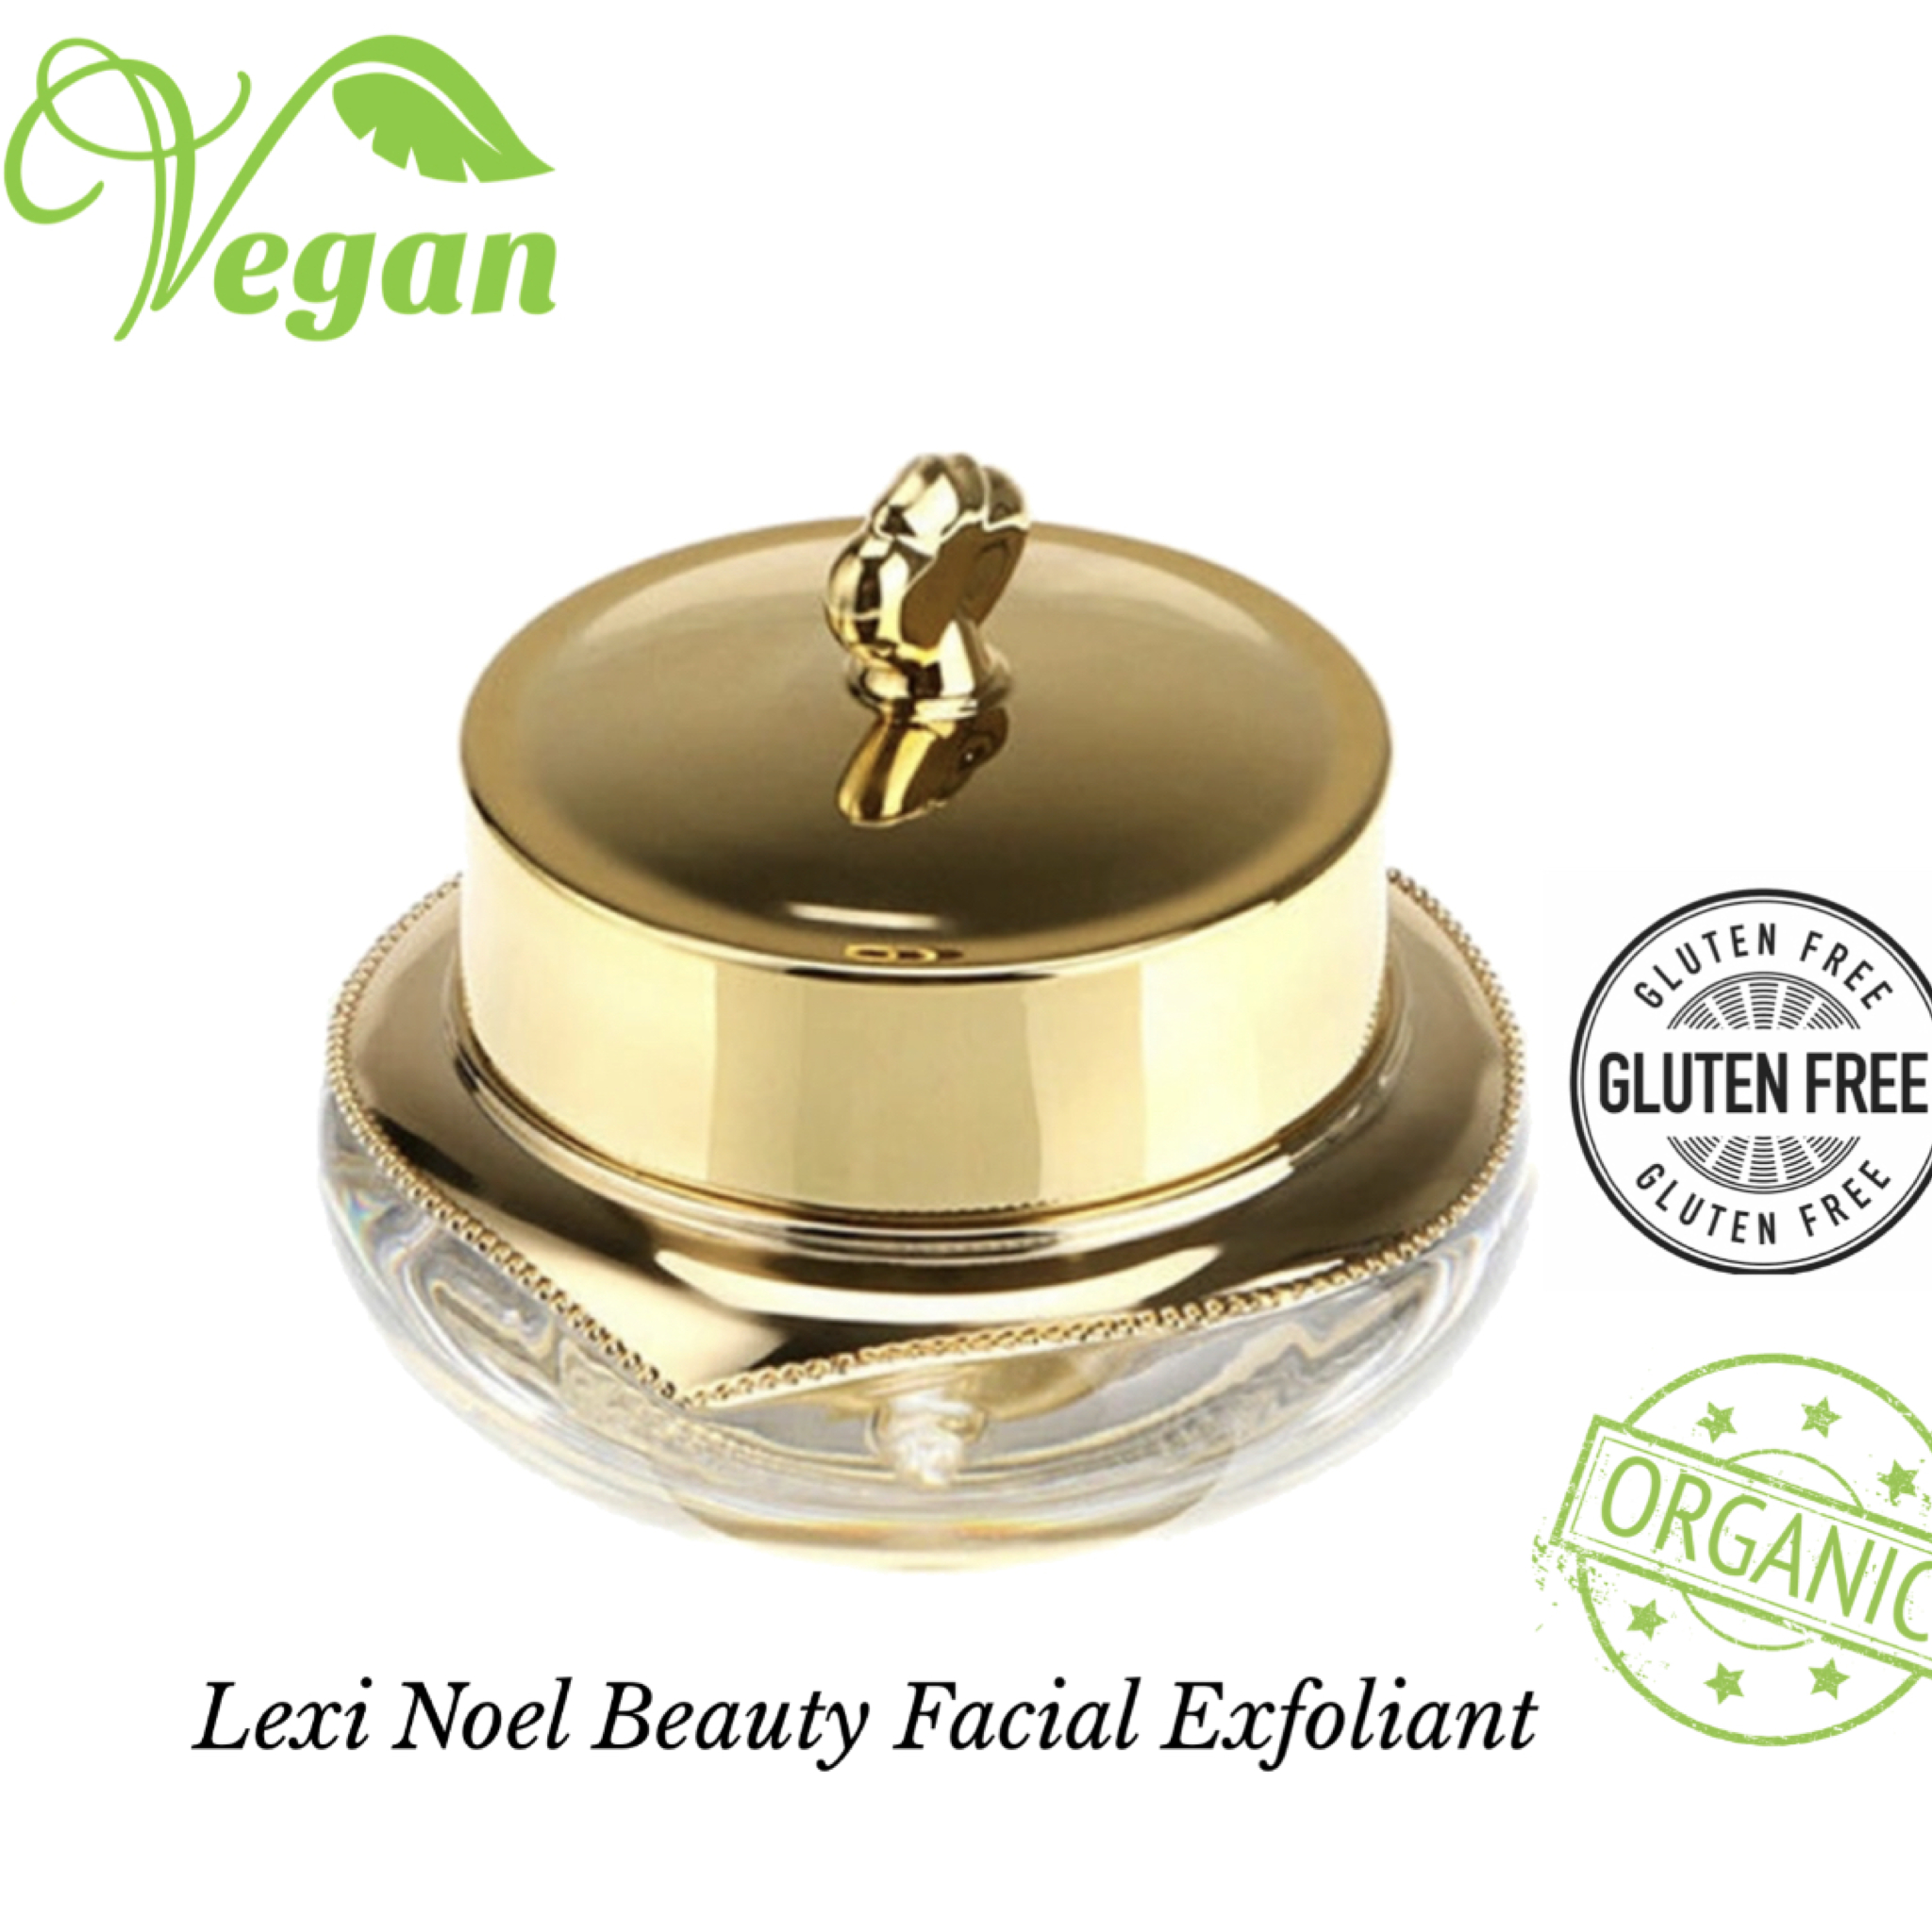 Facial Exfoliant Creme Face